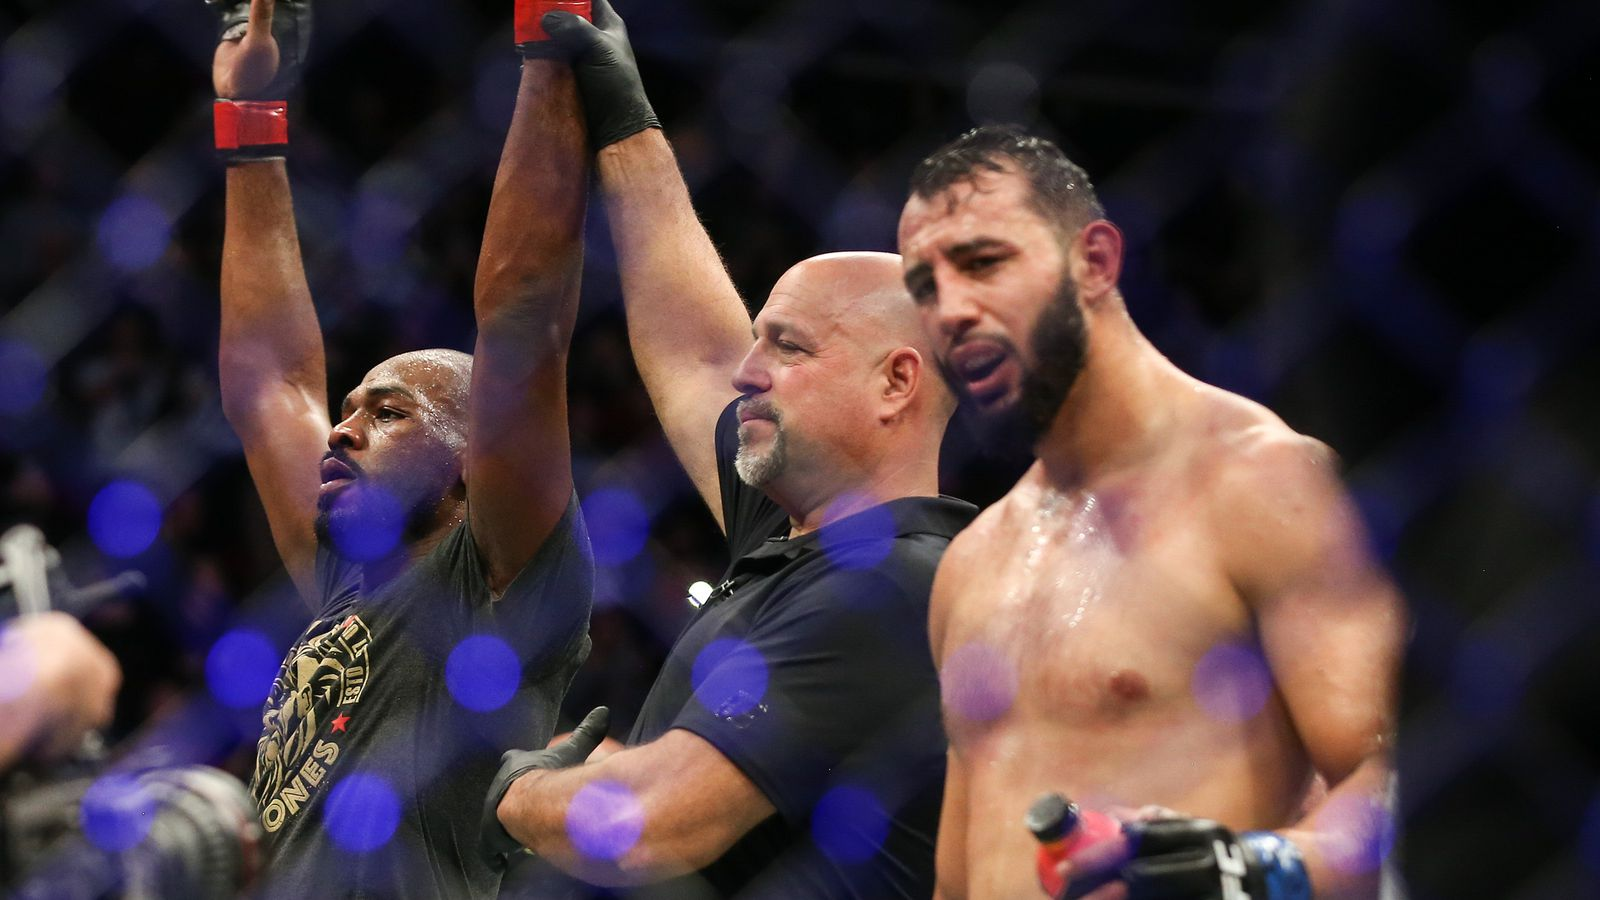 Jan Blachowicz has a message for pouty Dominick Reyes: 'You had your chance, but Jones was better'